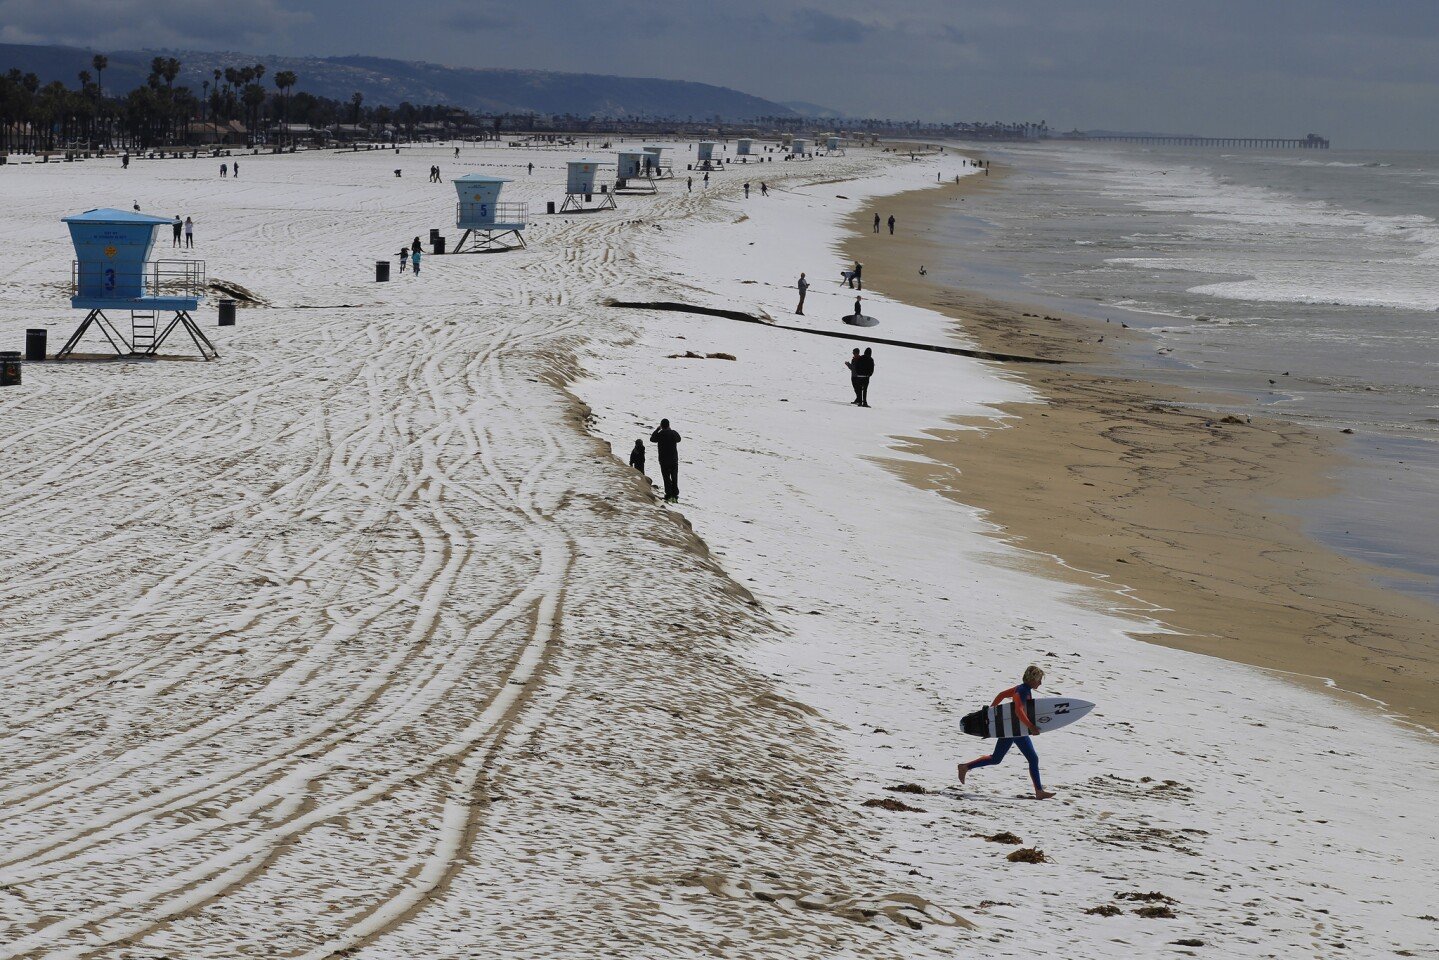 A surfer runs across the hail-covered sand in Huntington Beach.